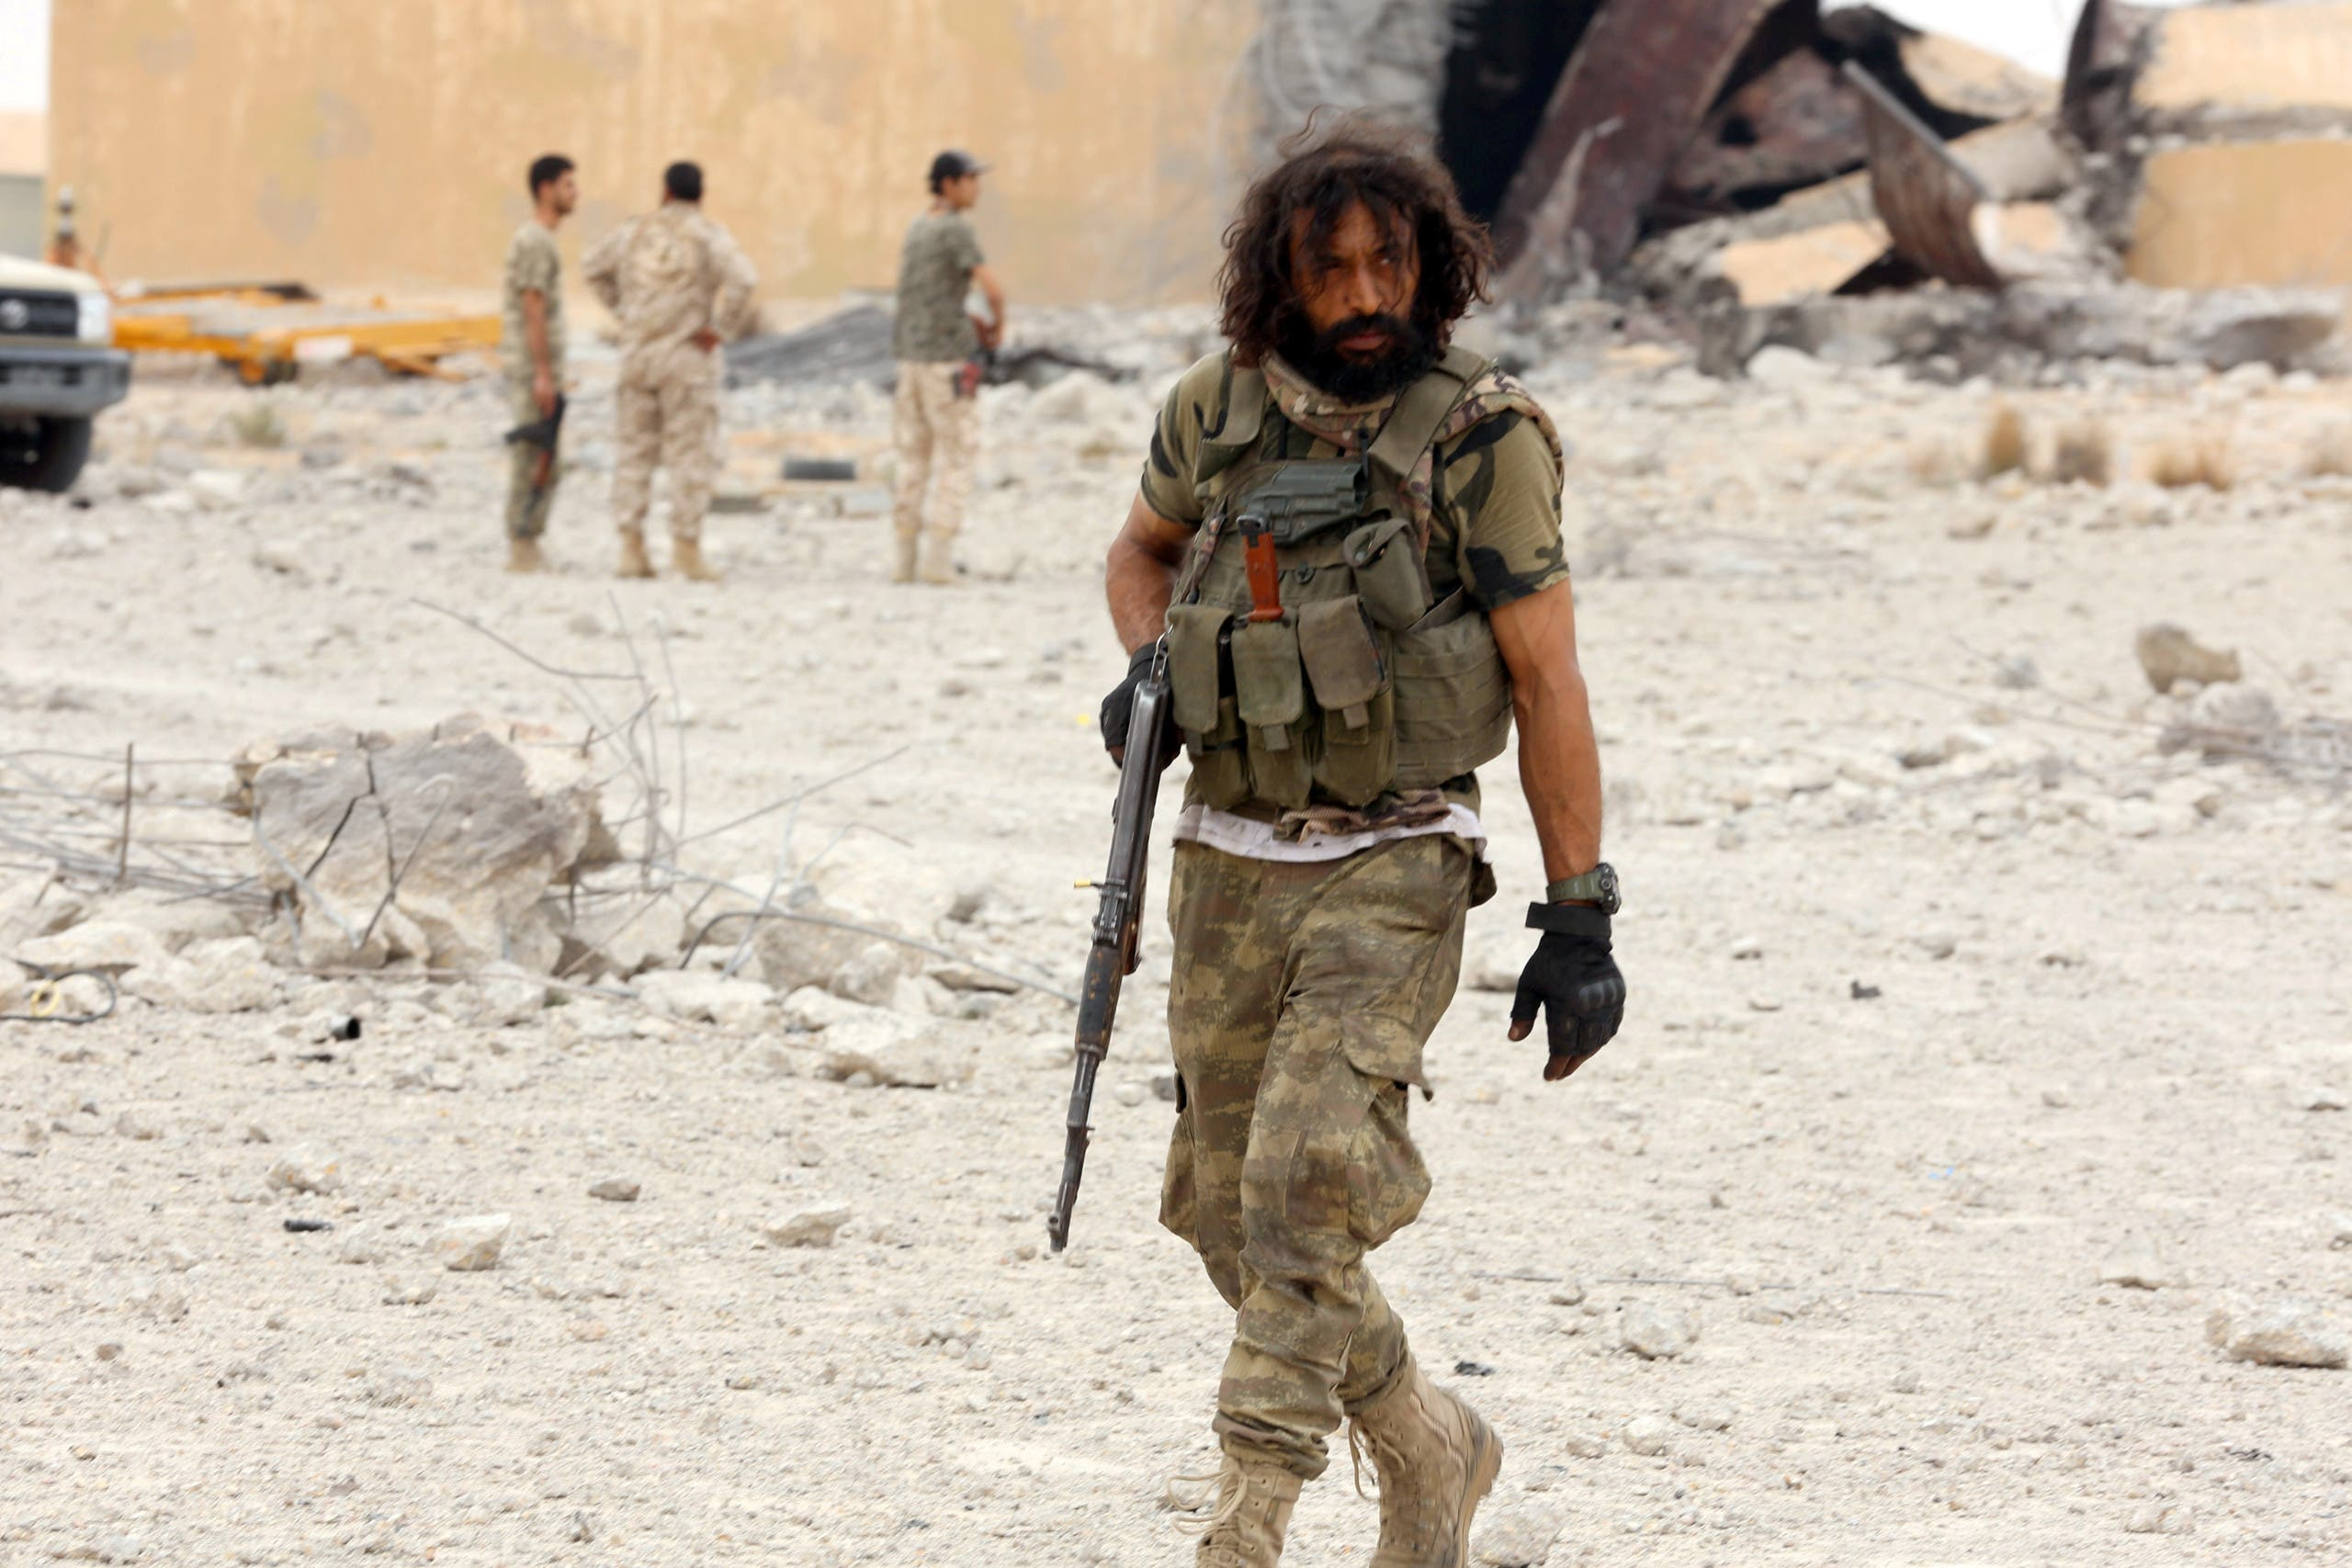 A member of the GNA holds his weapon after taking control of Watiya airbase, southwest of Tripoli, Libya May 18, 2020. (File photo: Reuters)